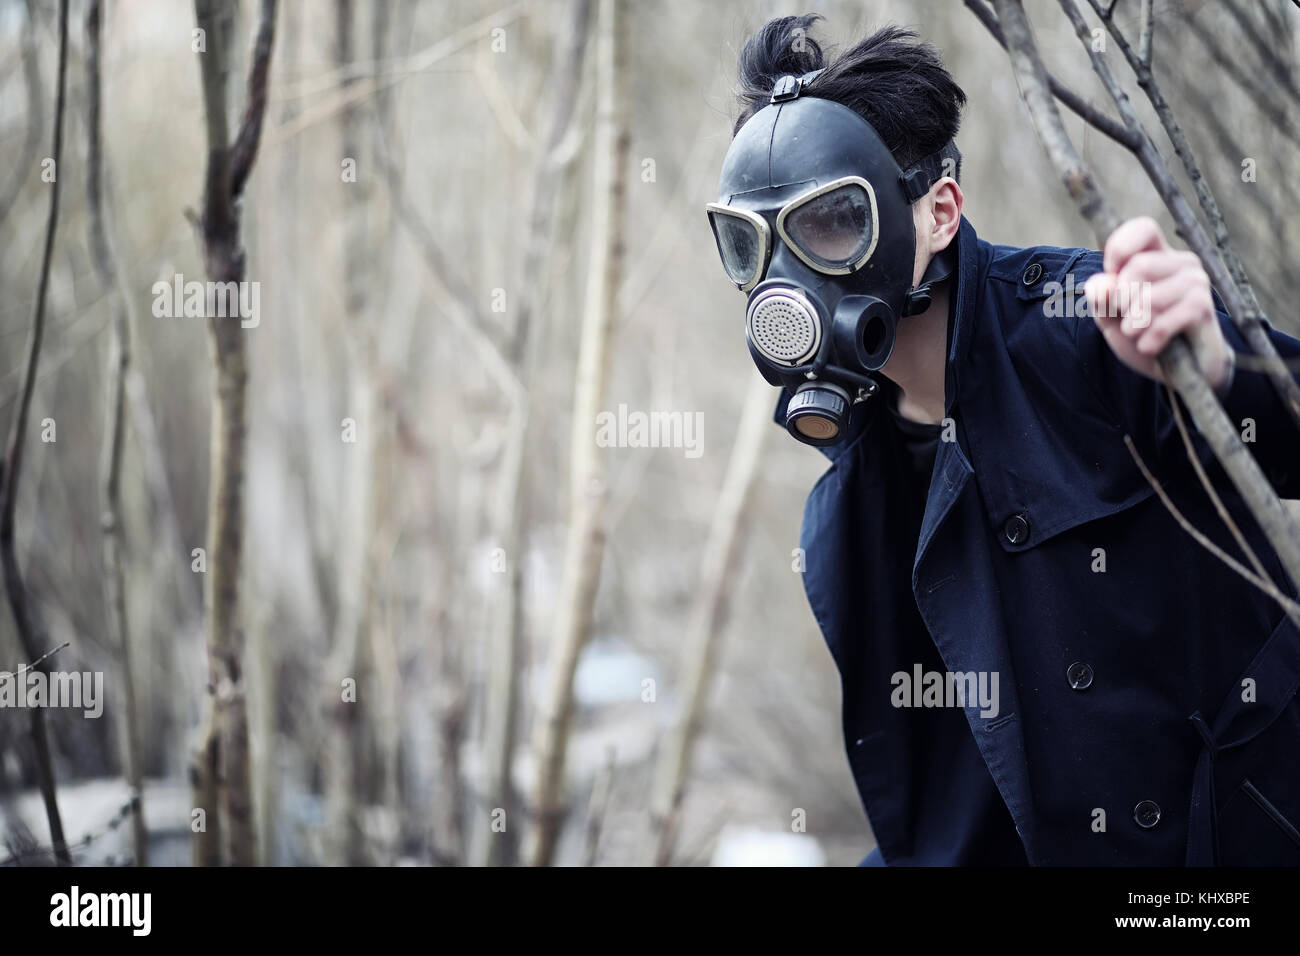 The guy in the coat and gas mask. Post-apocalyptic portrait of A - Stock Image